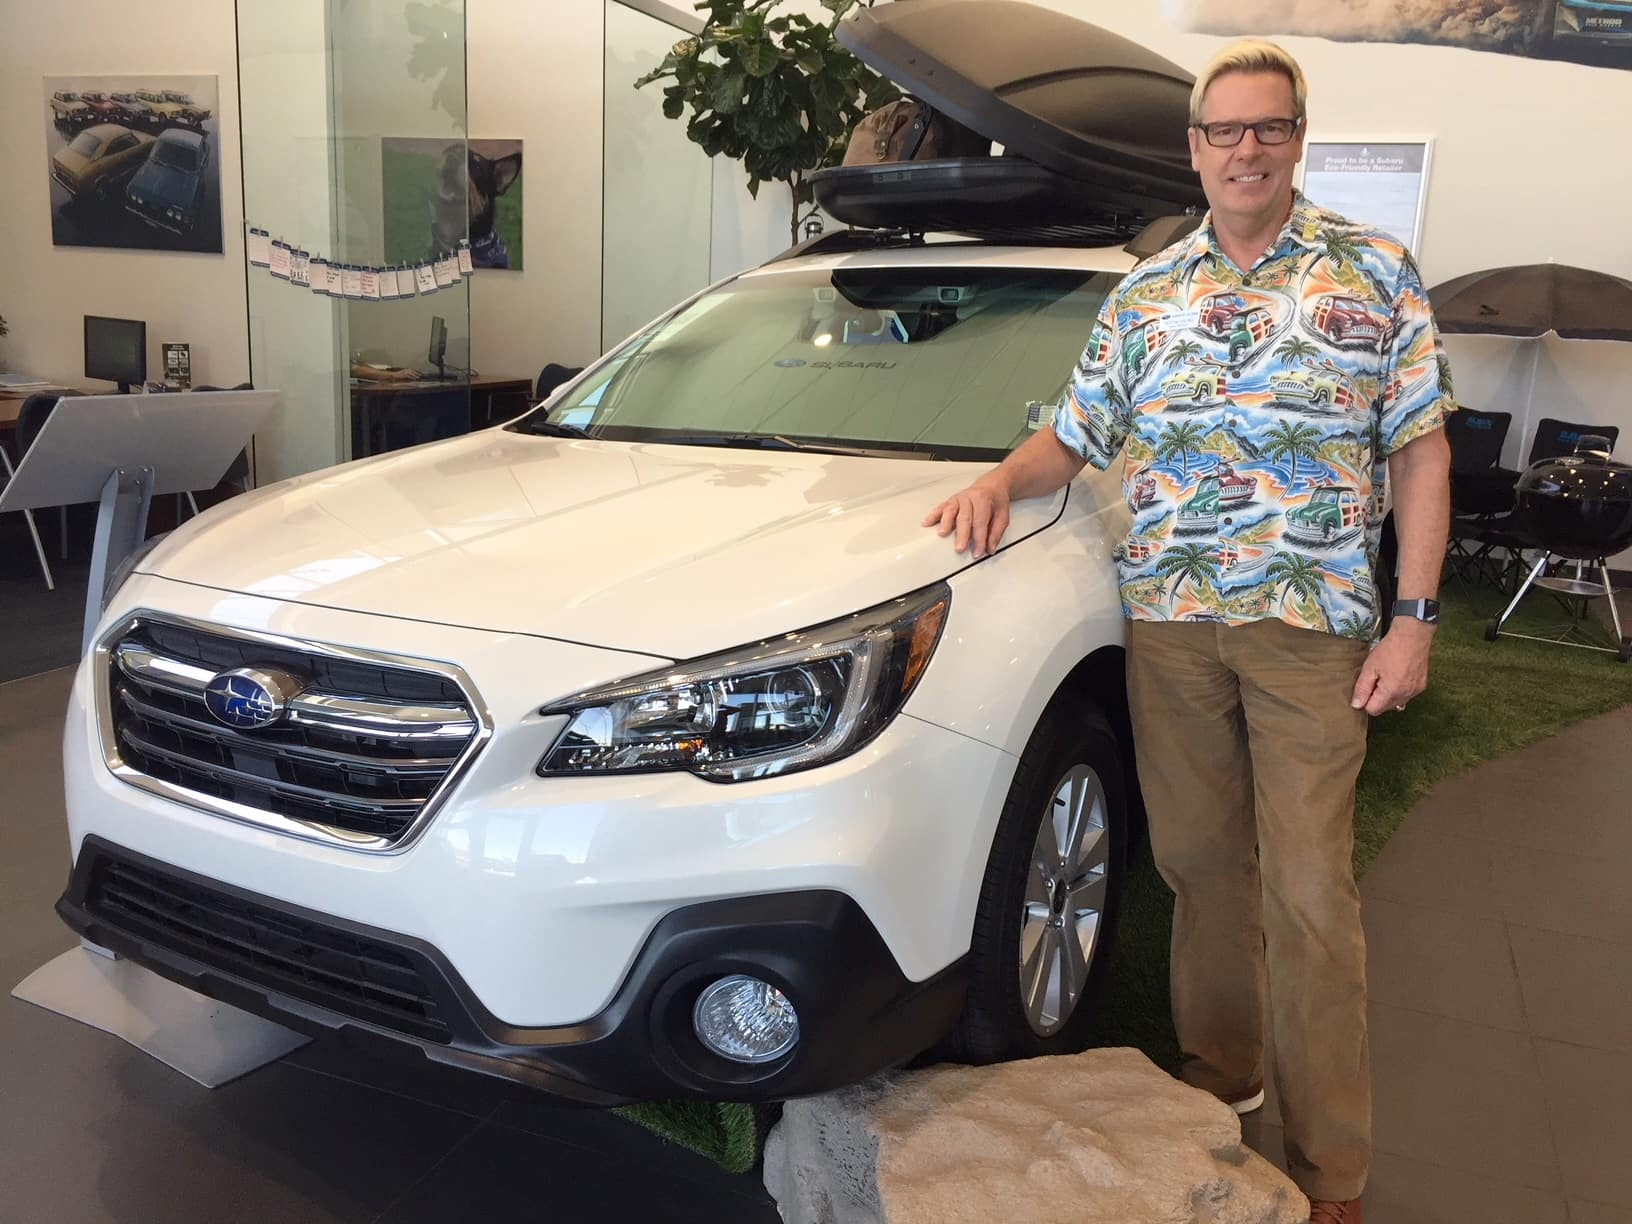 Subaru Of Las Vegas Gm Knows Firsthand About Safety The 2000 Outback Horn Findlay Auto Group